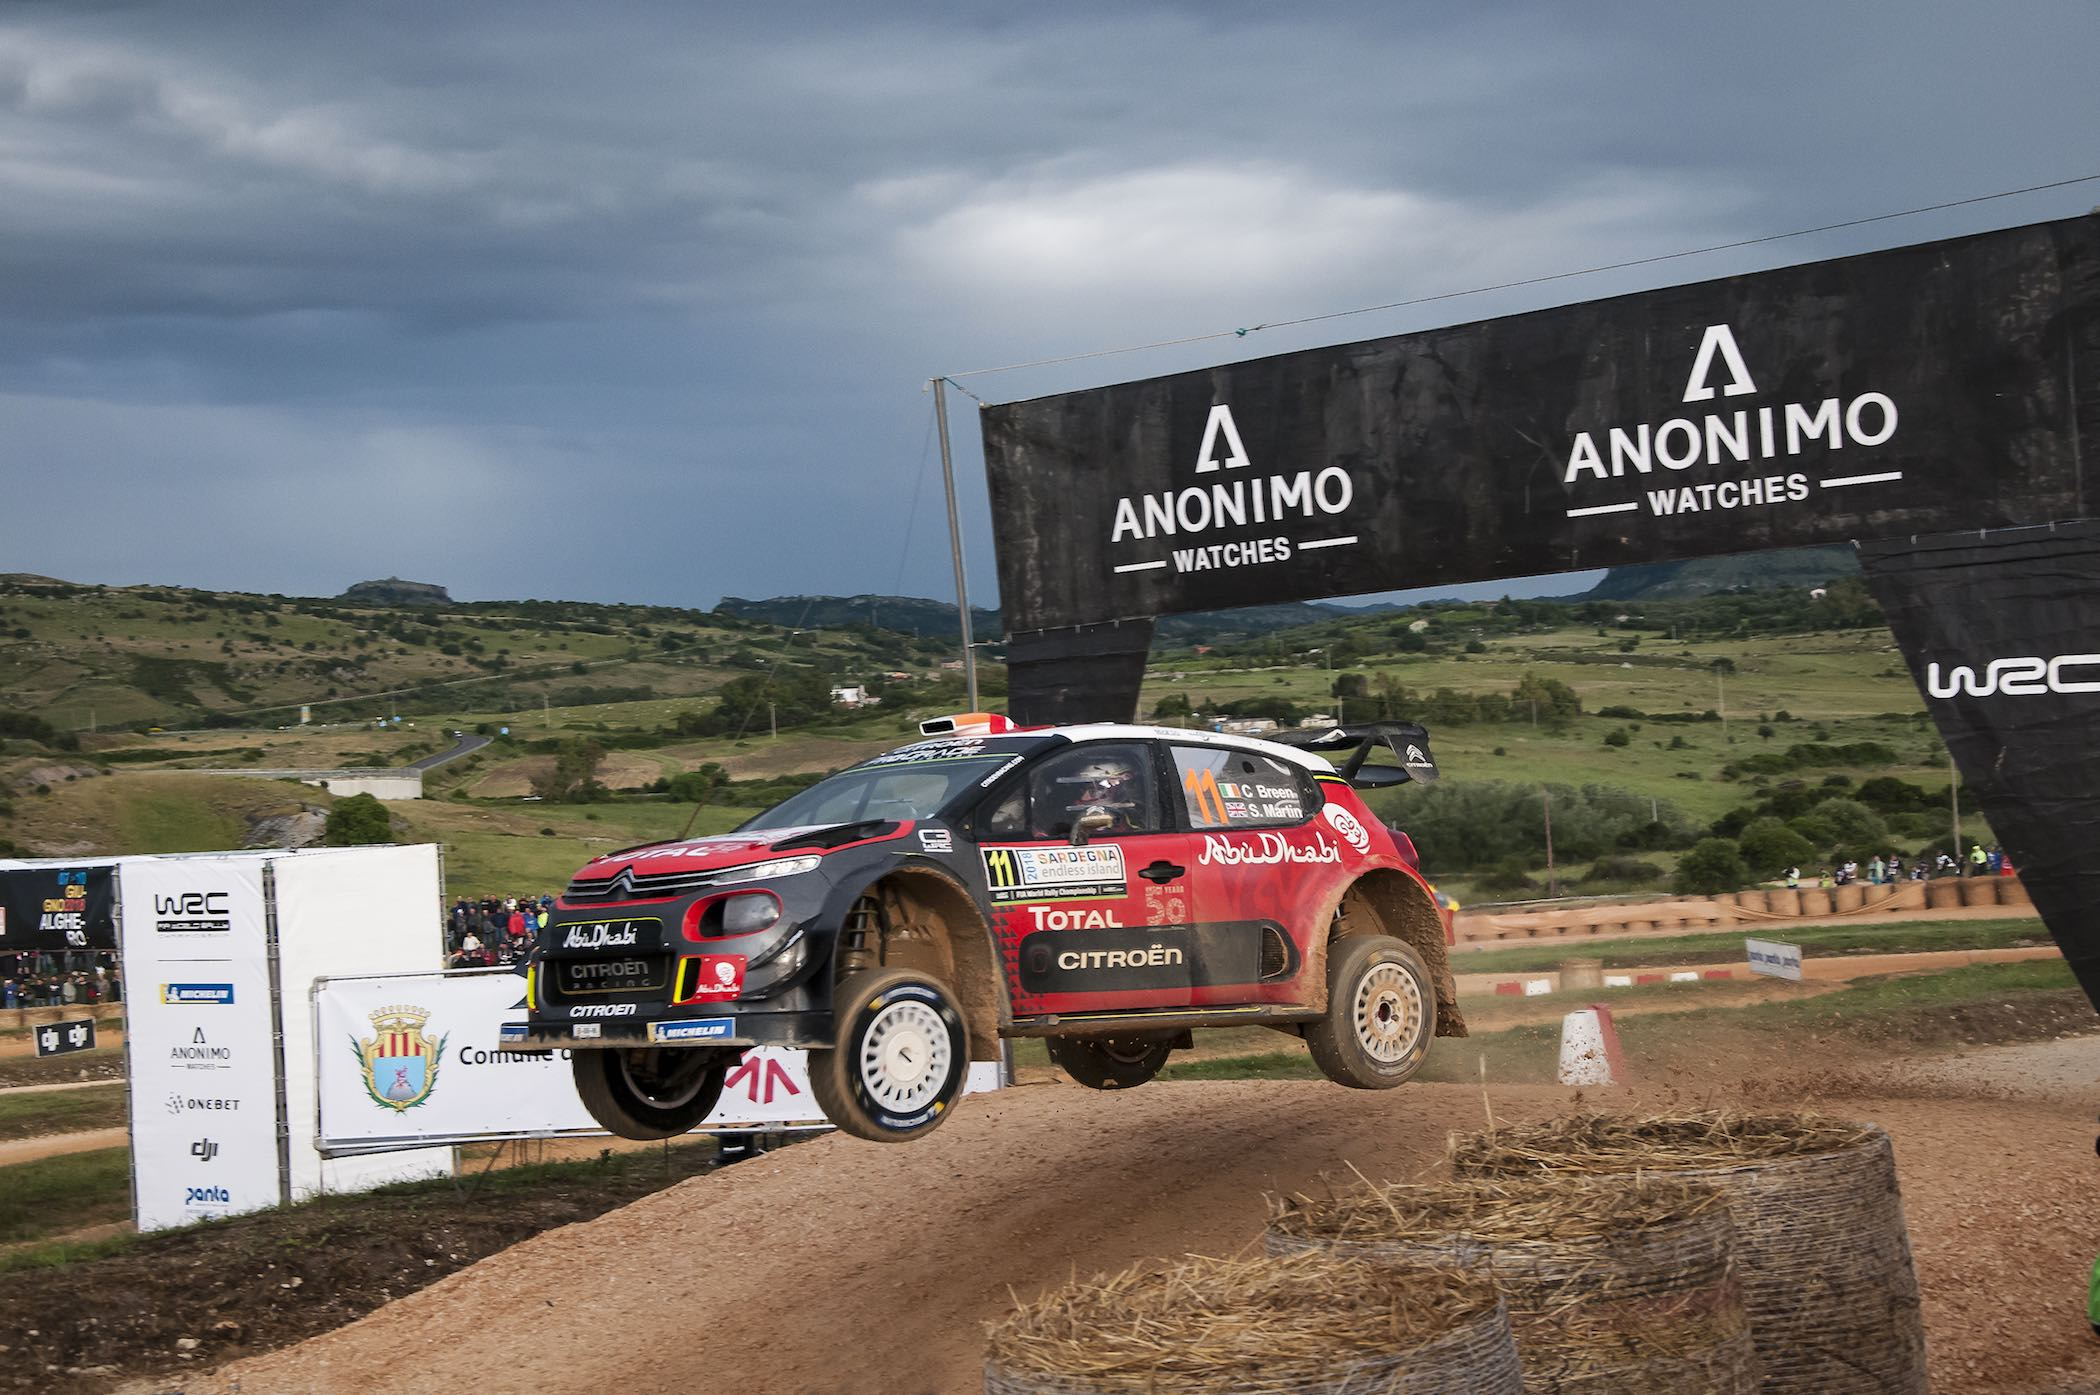 ANONIMO-Official-Timekeeper-WRC-Sardinia-2